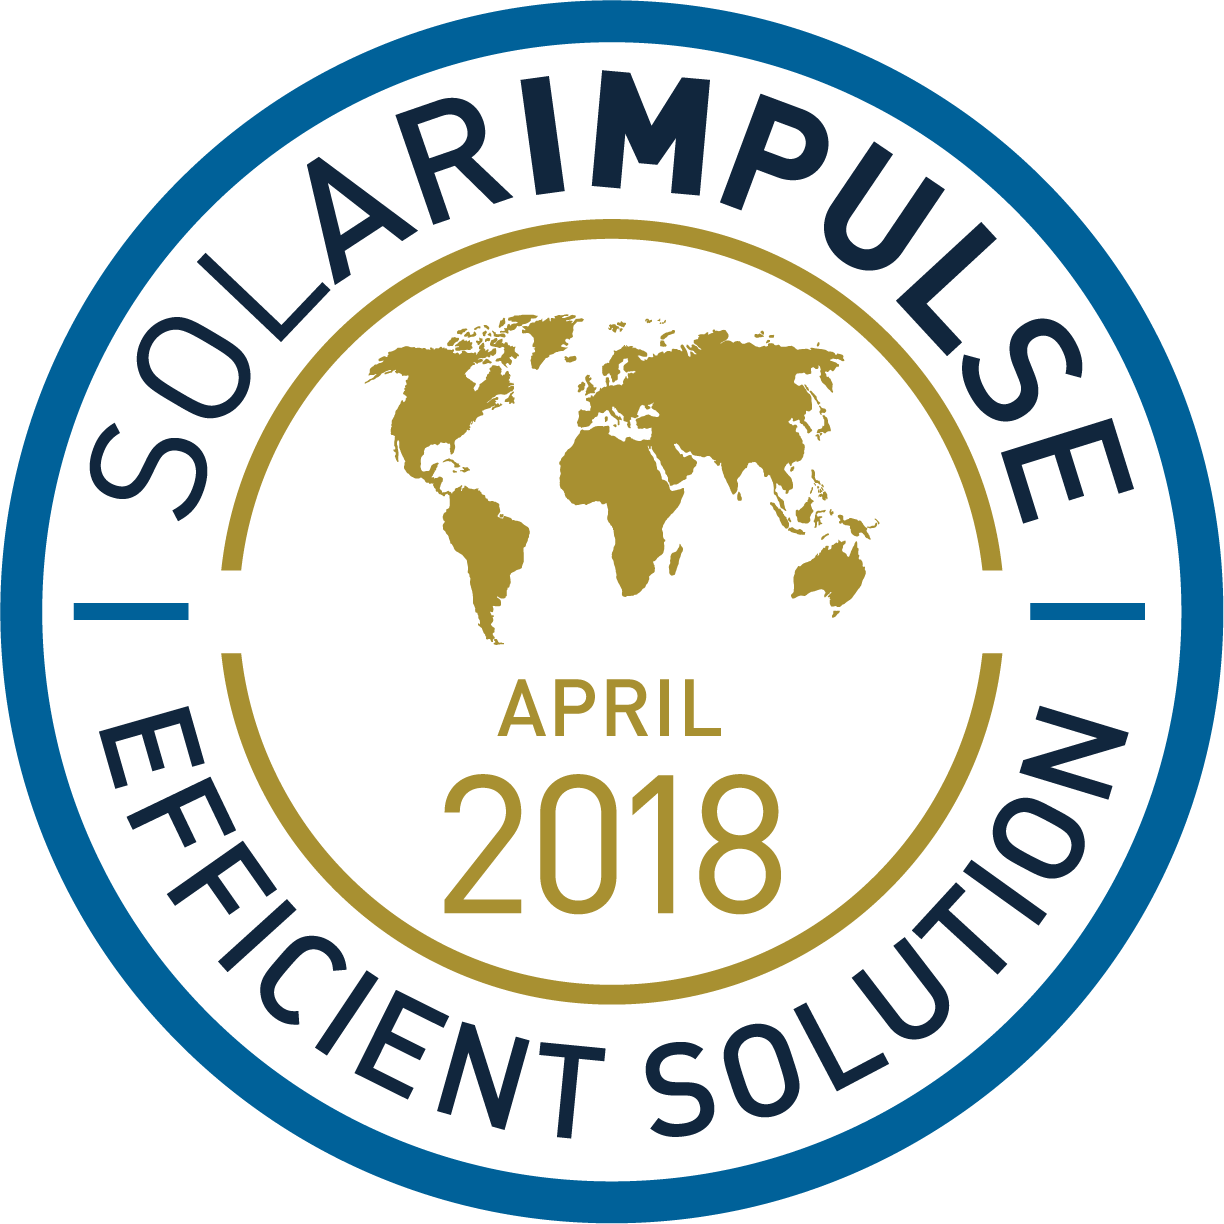 Label 1000 Efficient Solution - Solar Impulse Foundation